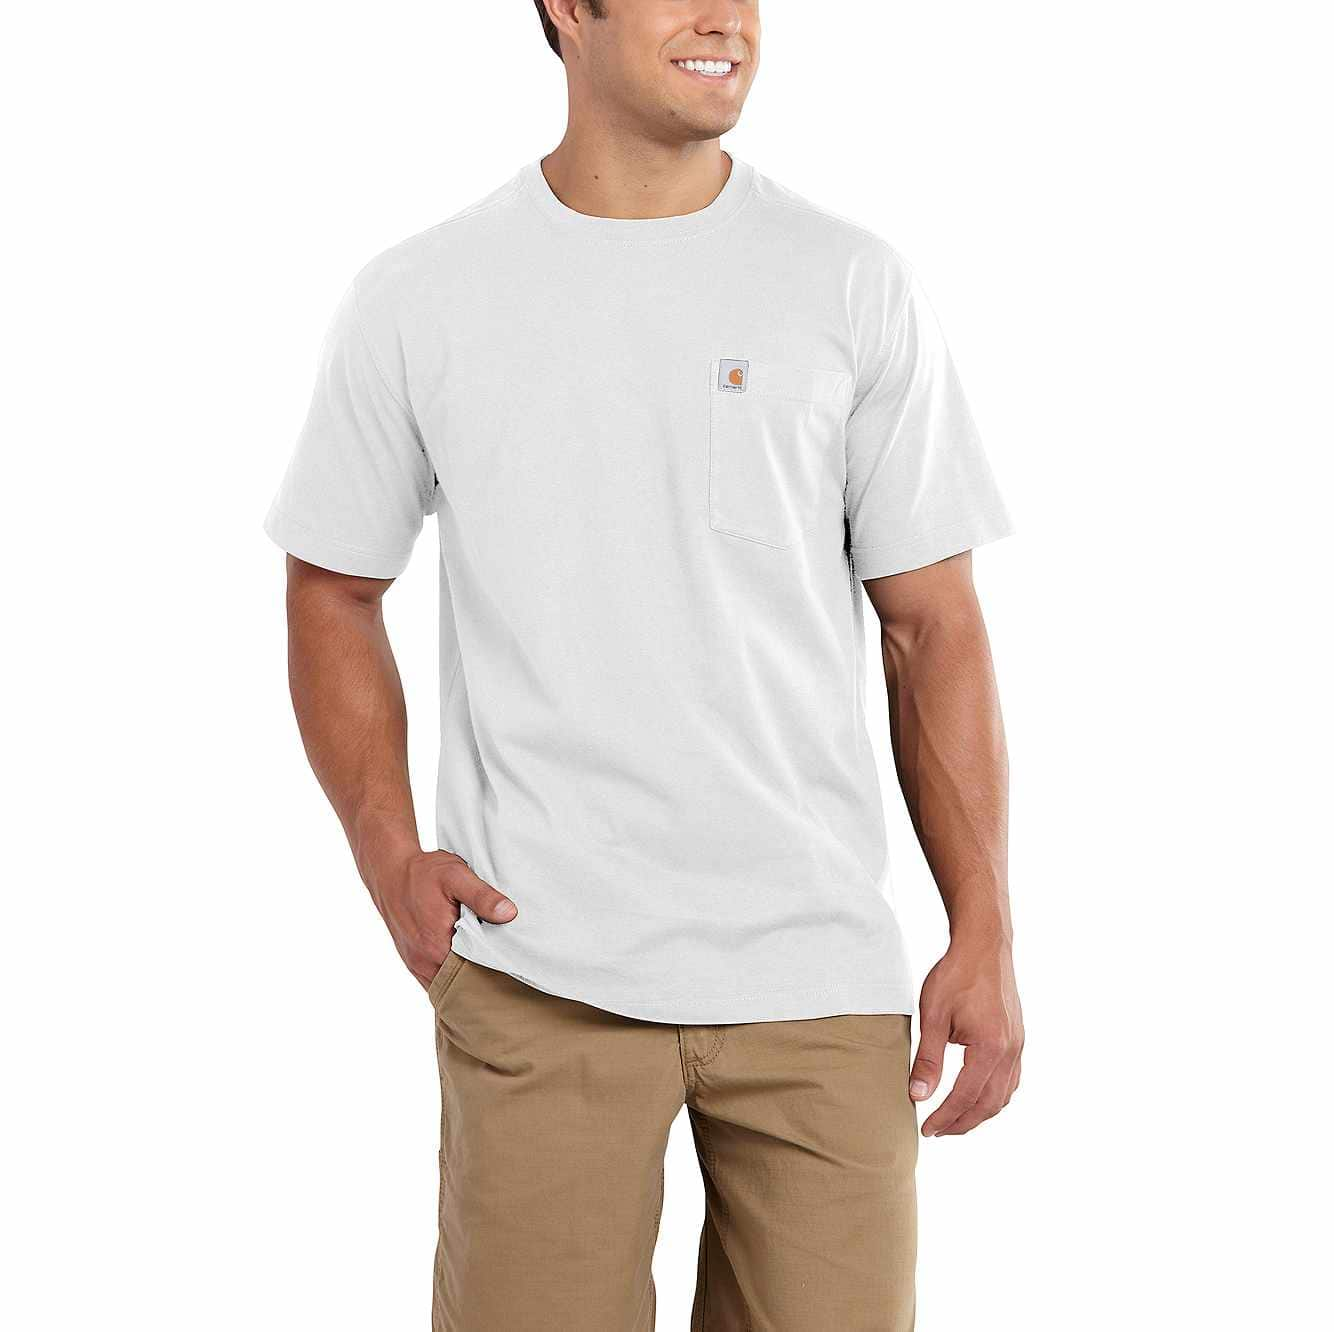 c0f4149cd370 Maddock Pocket Short-Sleeve T-Shirt